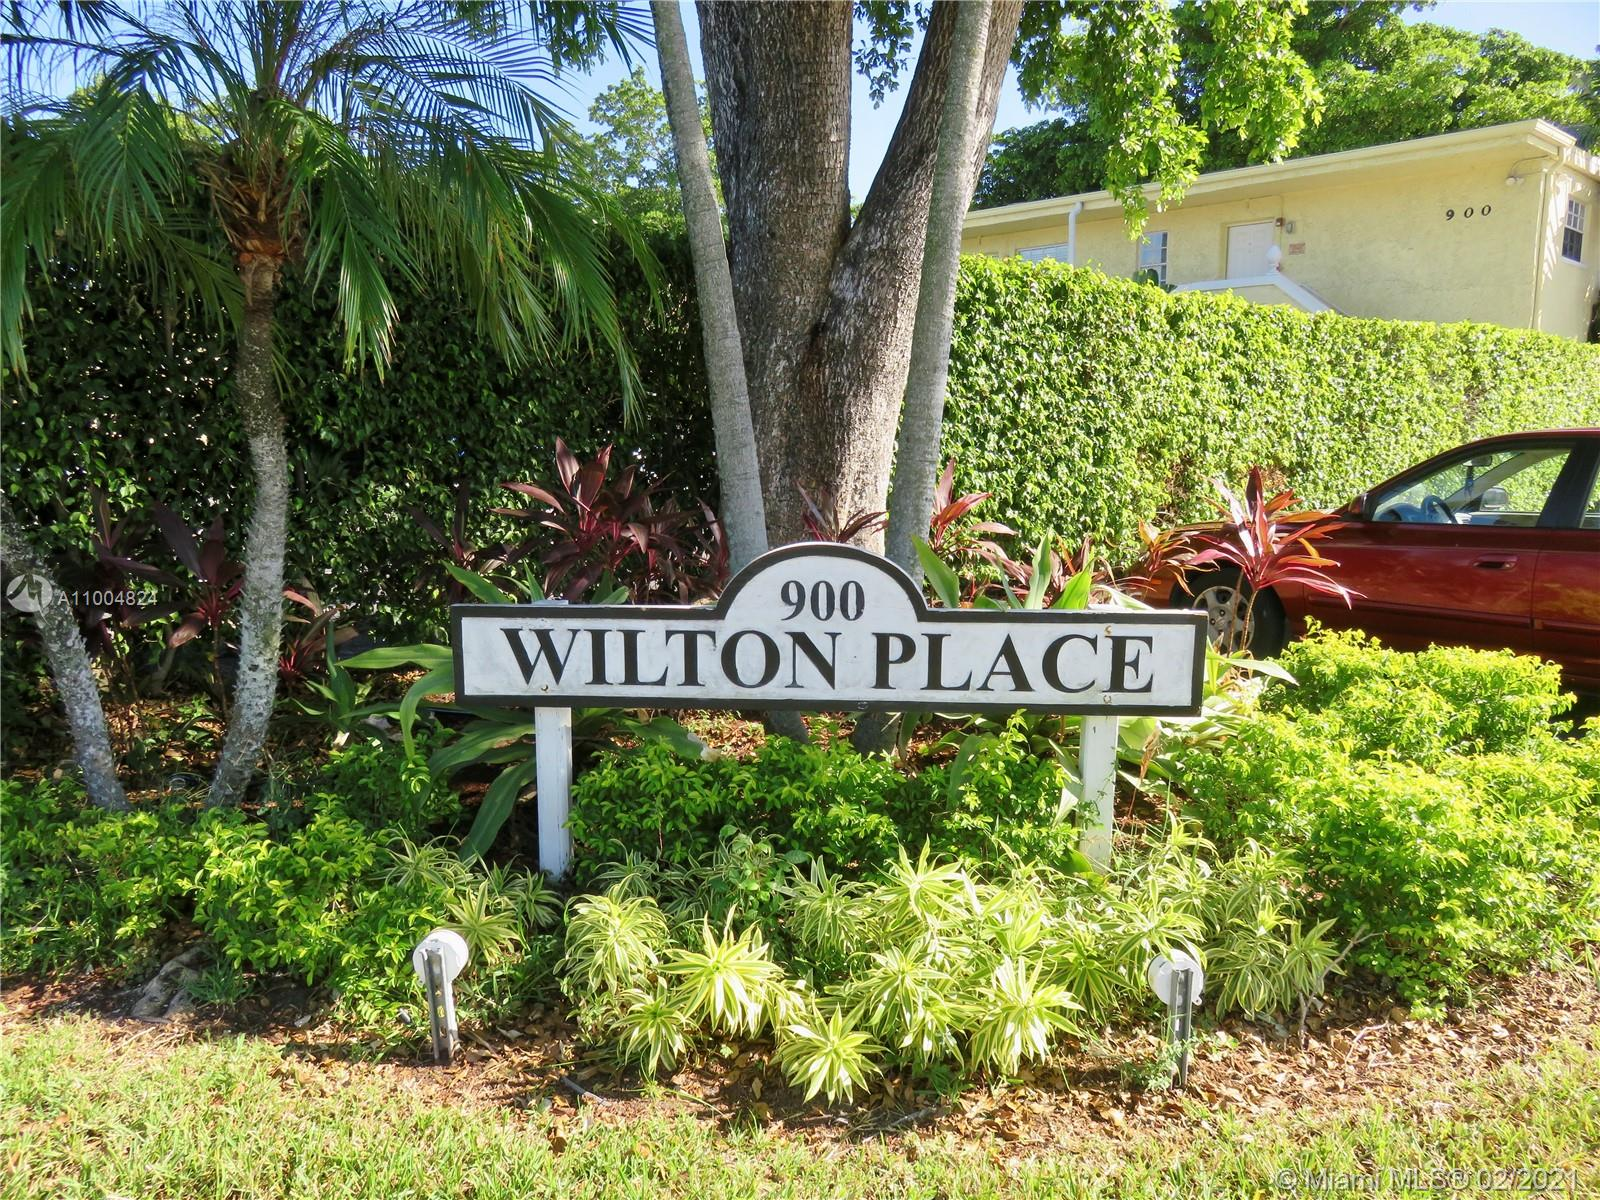 MUST SEE THIS BEAUTIFUL 2-BEDROOMS AND 1-BATHROOM INCOME PROPERTY APARTMENT IN DESIRABLE WILTON MANORS! WALKING DISTANCE TO STARBUCKS, DUNKIN DONUTS, PUBLIX, & NIGHTLIFE - RIGHT IN THE HEART OF WILTON MANORS ENTERTAINMENT DISTRICT! AMENITIES INCLUDE KITCHEN APPLIANCES, TILE FLOORS, HIGH-IMPACT WINDOWS, WALK-IN CLOSET, HVAC, WATER HEATER AND REFRIGERATOR. NEED TO ACT QUICKLY AS THIS APARTMENT WILL NOT LAST. CAN LEASE IMMEDIATELY UPON​​‌​​​​‌​​‌‌​‌‌‌​​‌‌​‌‌‌​​‌‌​‌‌‌ OWNERSHIP.